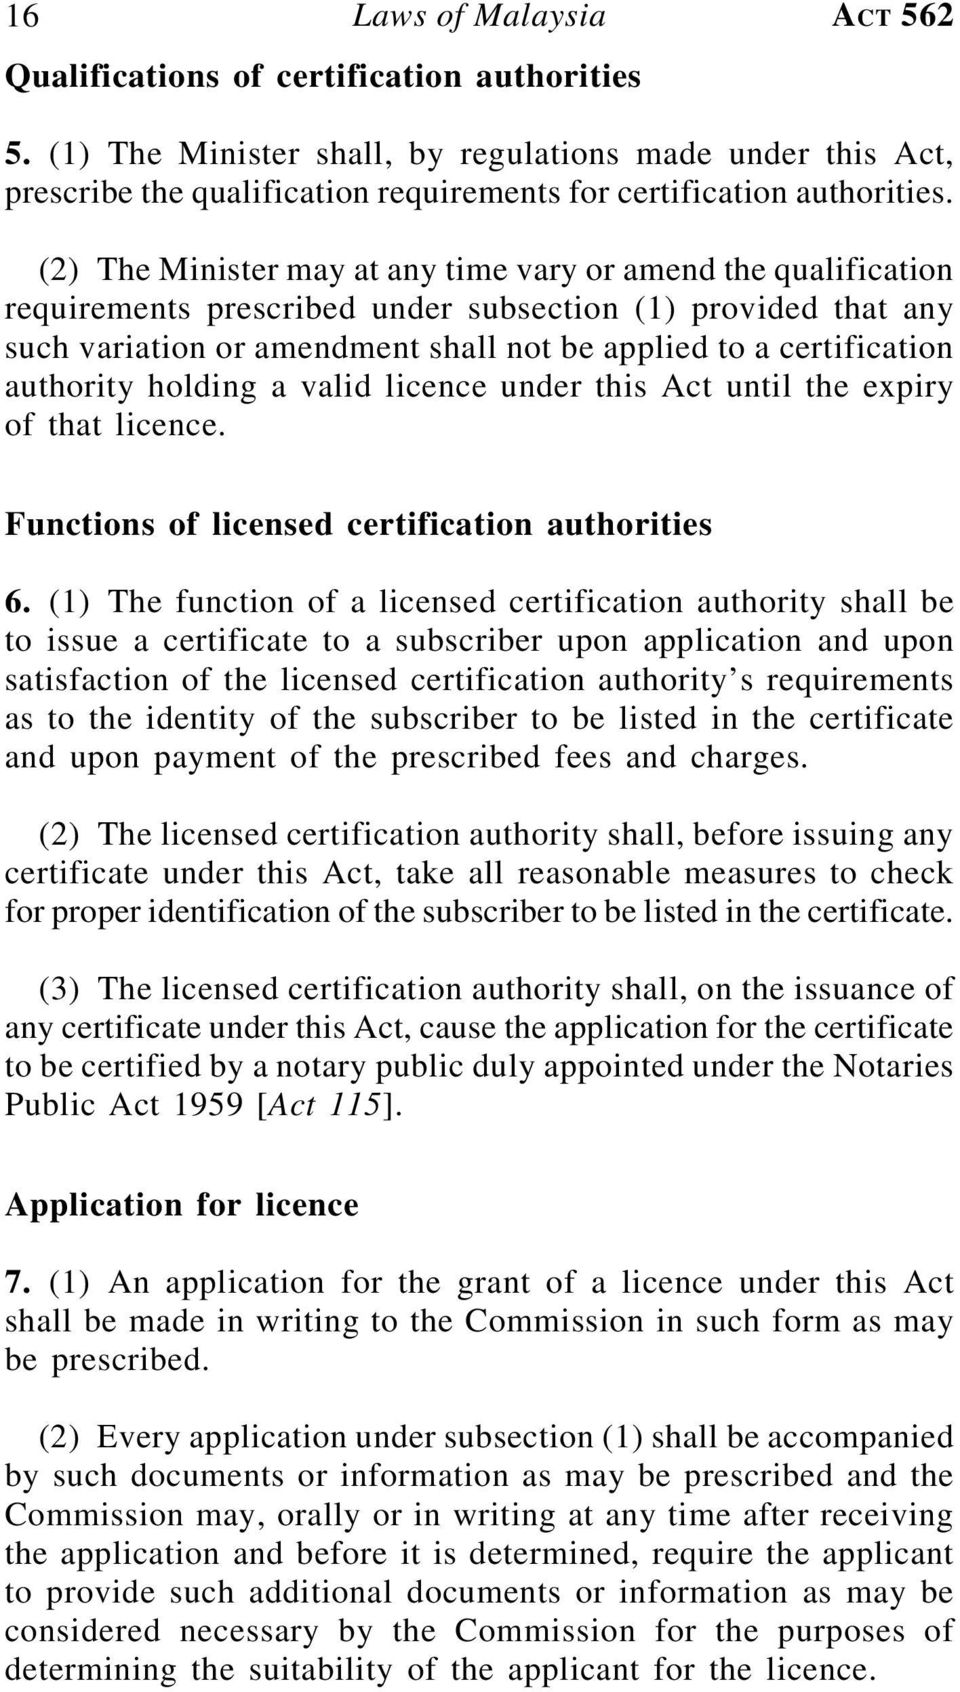 (2) The Minister may at any time vary or amend the qualification requirements prescribed under subsection (1) provided that any such variation or amendment shall not be applied to a certification